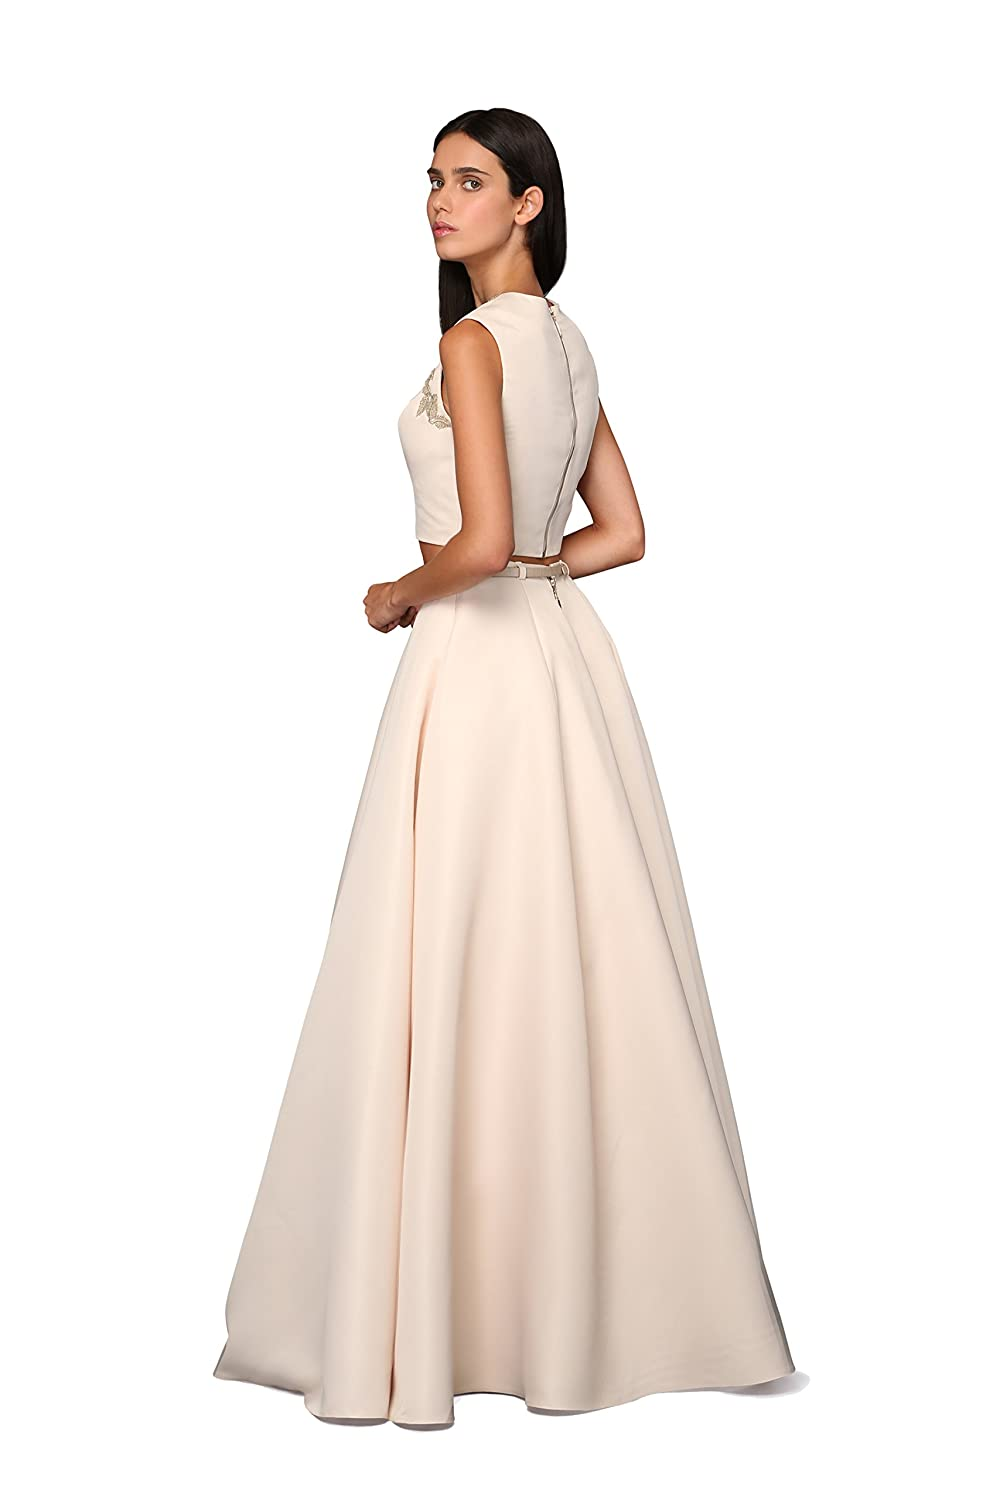 OXCIIS AUSTRALIA Priya Nude Matt Satin Dress Ball Gown Evening Dress Bridesmaid Dress Long Prom Gown at Amazon Womens Clothing store: